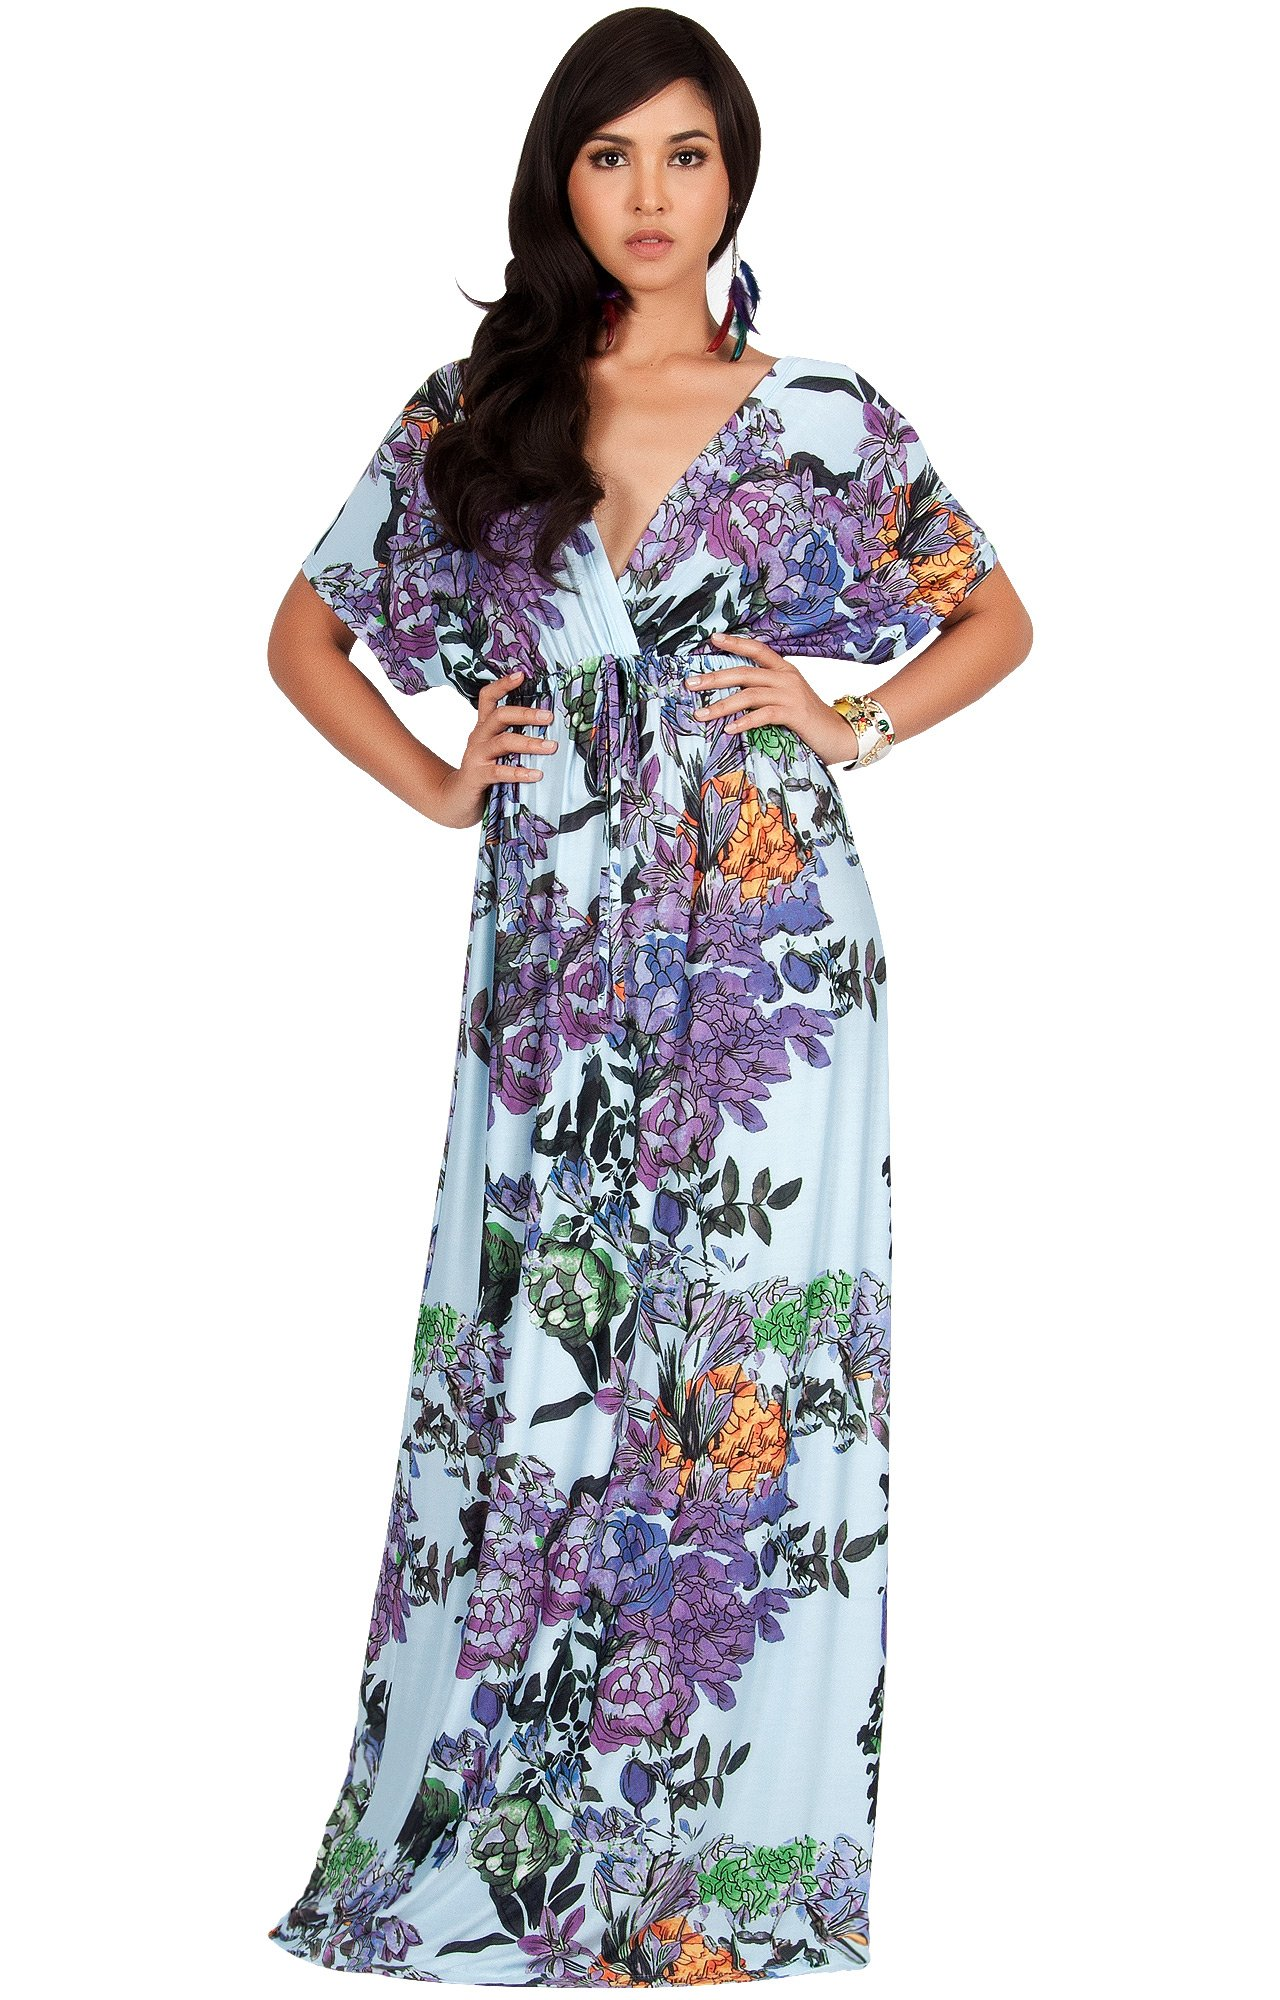 125505d391 KOH KOH Plus Size Women Long Kimono Sleeve Short Sleeves V-Neck Vintage  Floral Print Summer Hawaiian Casual Cocktail Sundress Sun Gown Gowns Maxi  Dresses